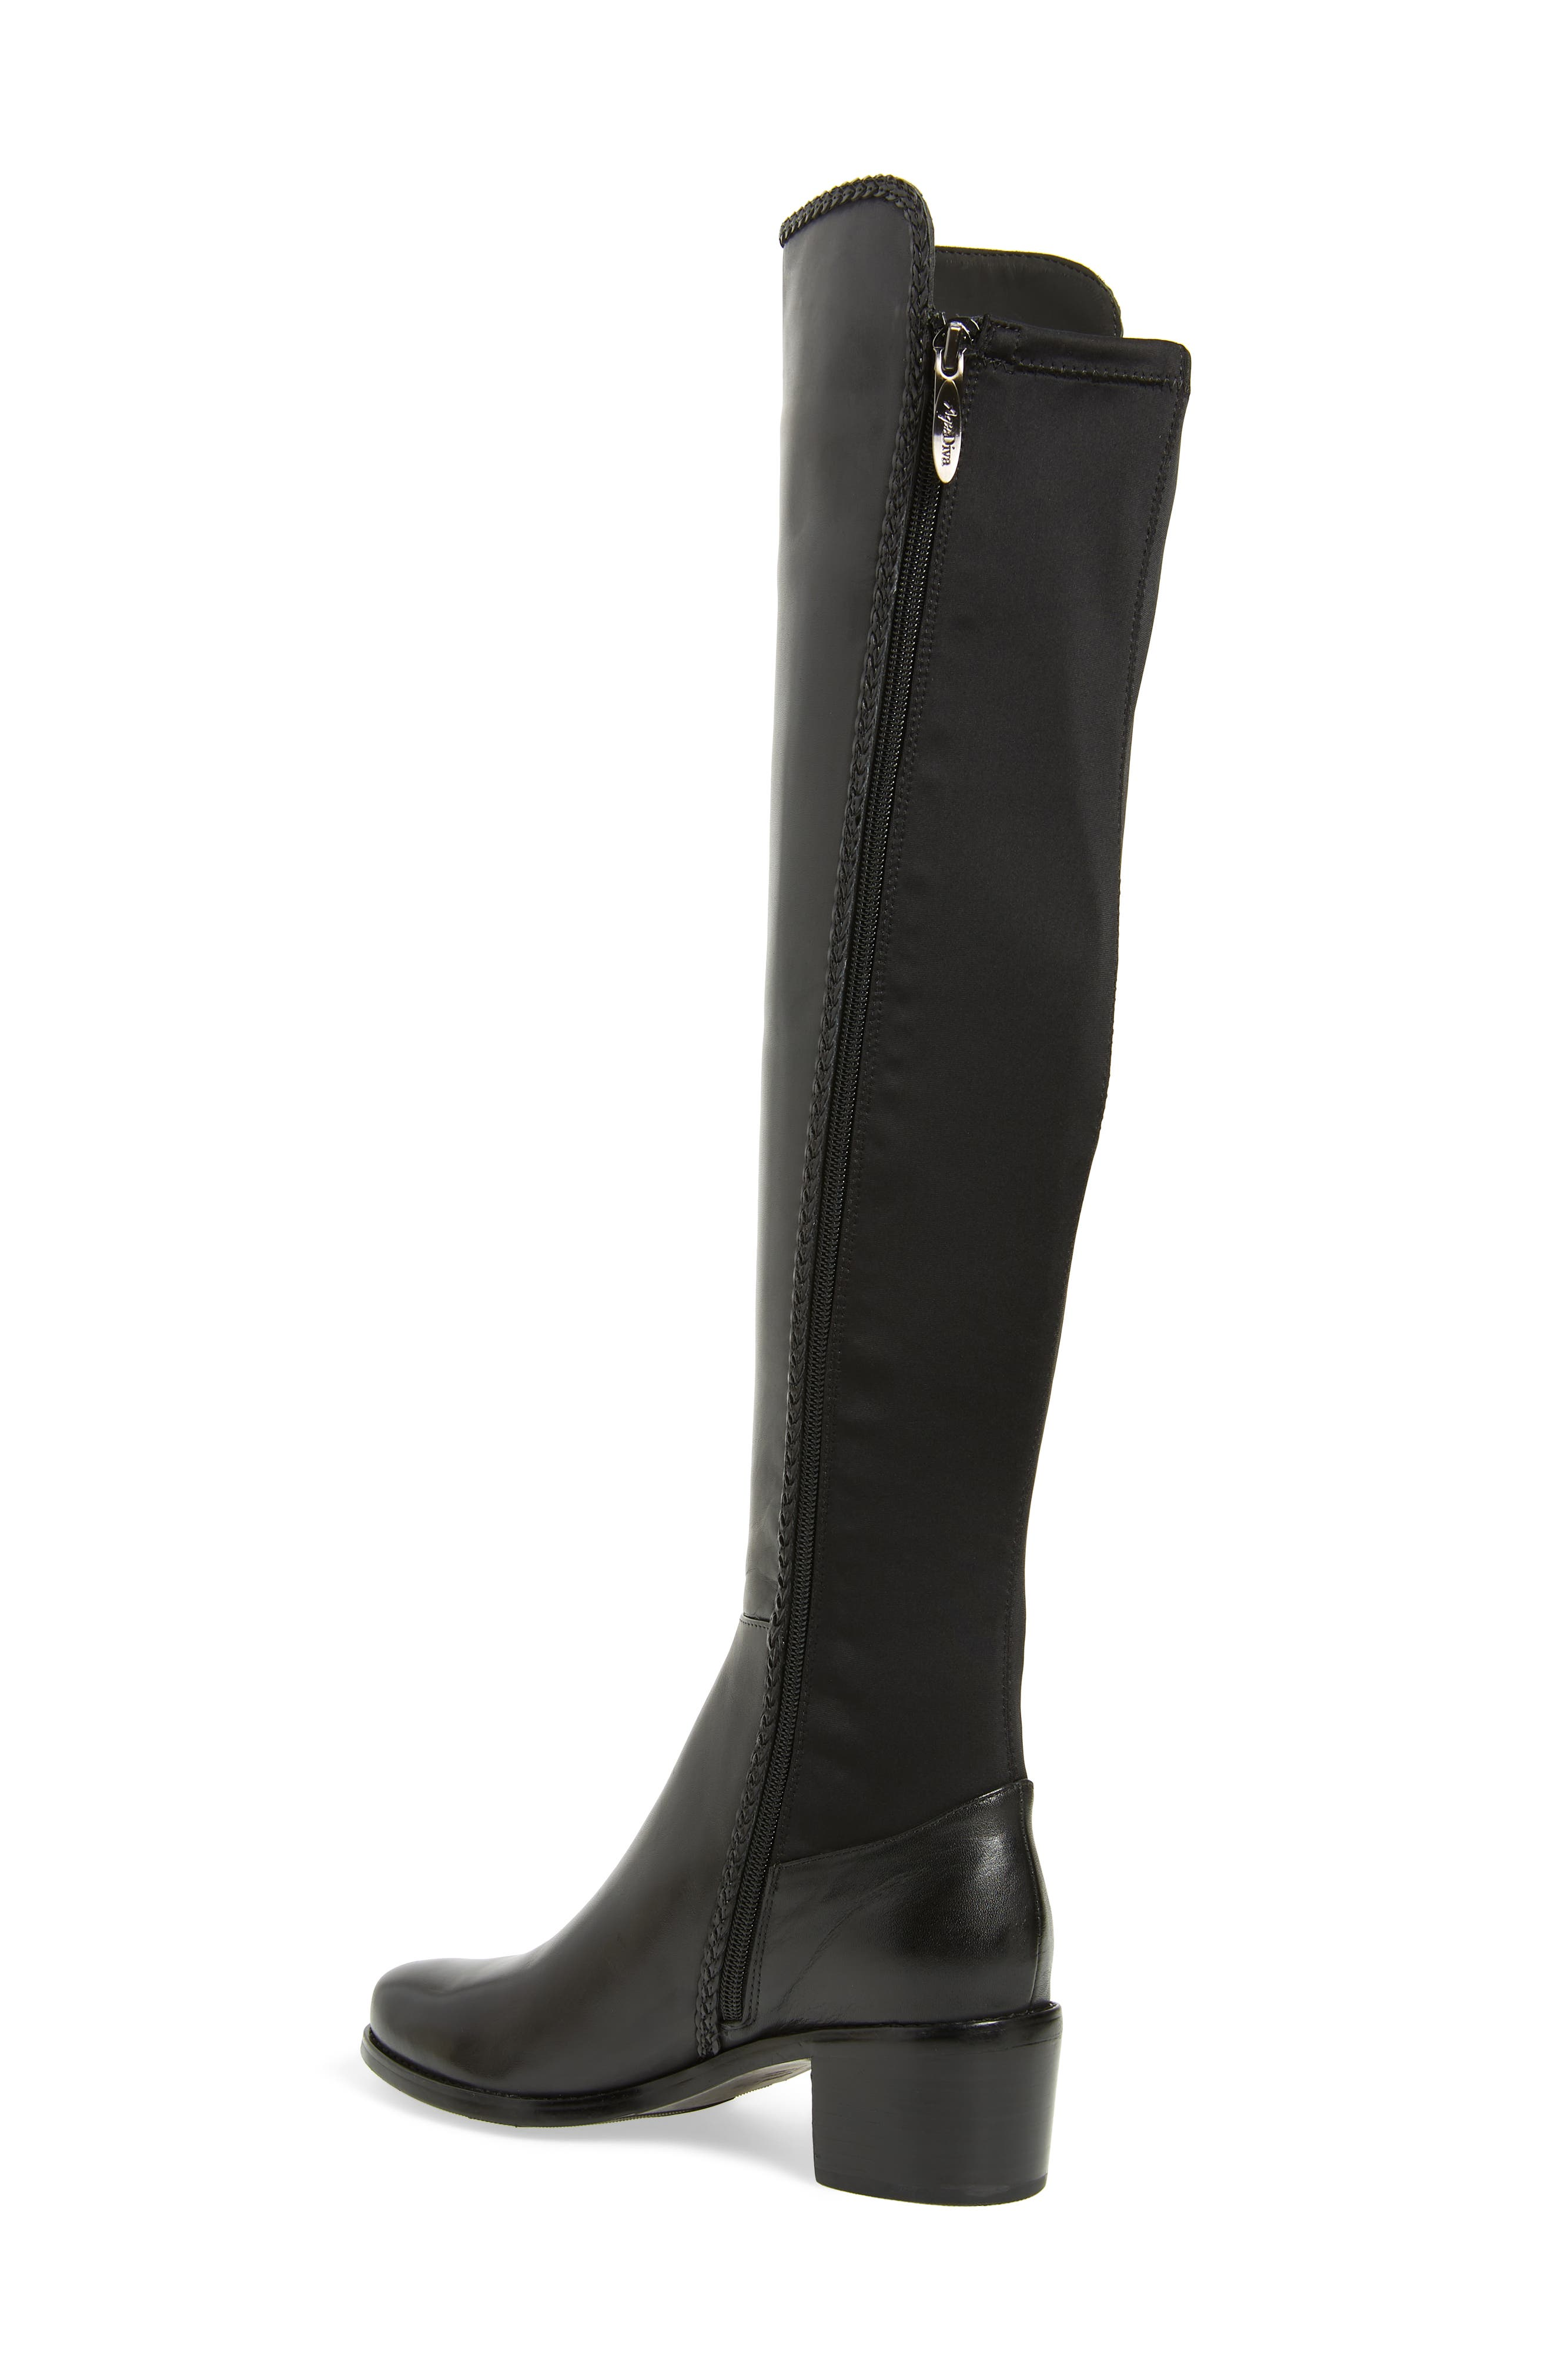 AQUADIVA, Florence Waterproof Over the Knee Boot, Alternate thumbnail 2, color, BLACK LEATHER